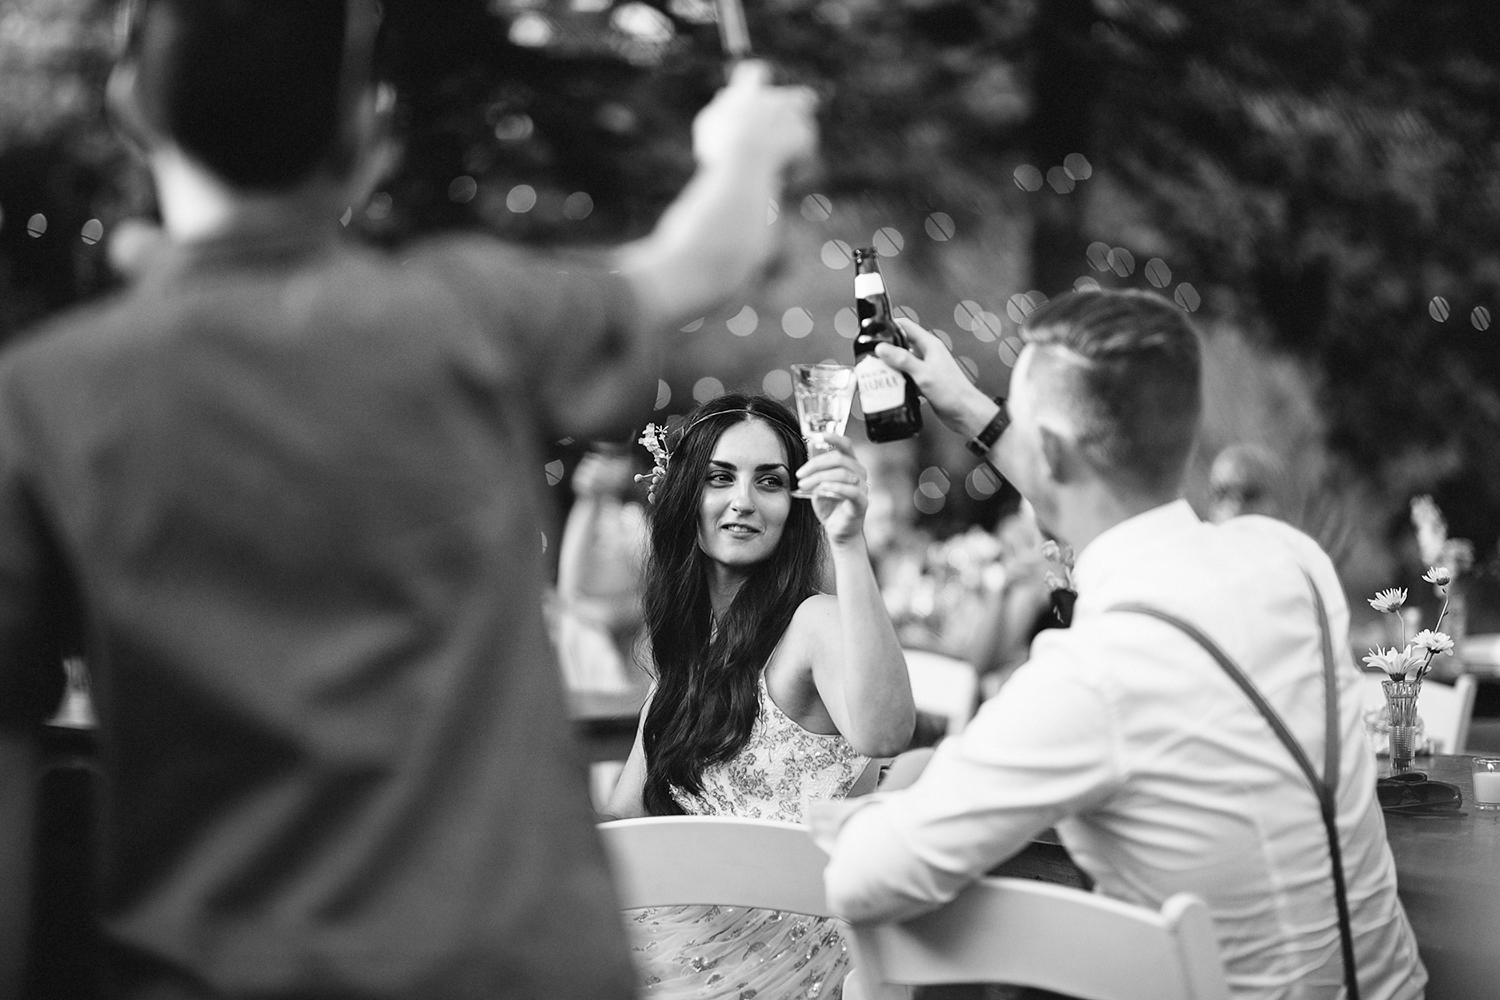 Backyard-toronto-film-photographer-ryanne-hollies-photography-diy-string-lights-and-lanterns-reception-dinner-documentary-wooden-harvest-tables-diy-decor-speeches-bride-and-groom-siblings-speech-groom-crying-candid-cheers-drinks-bw.jpg